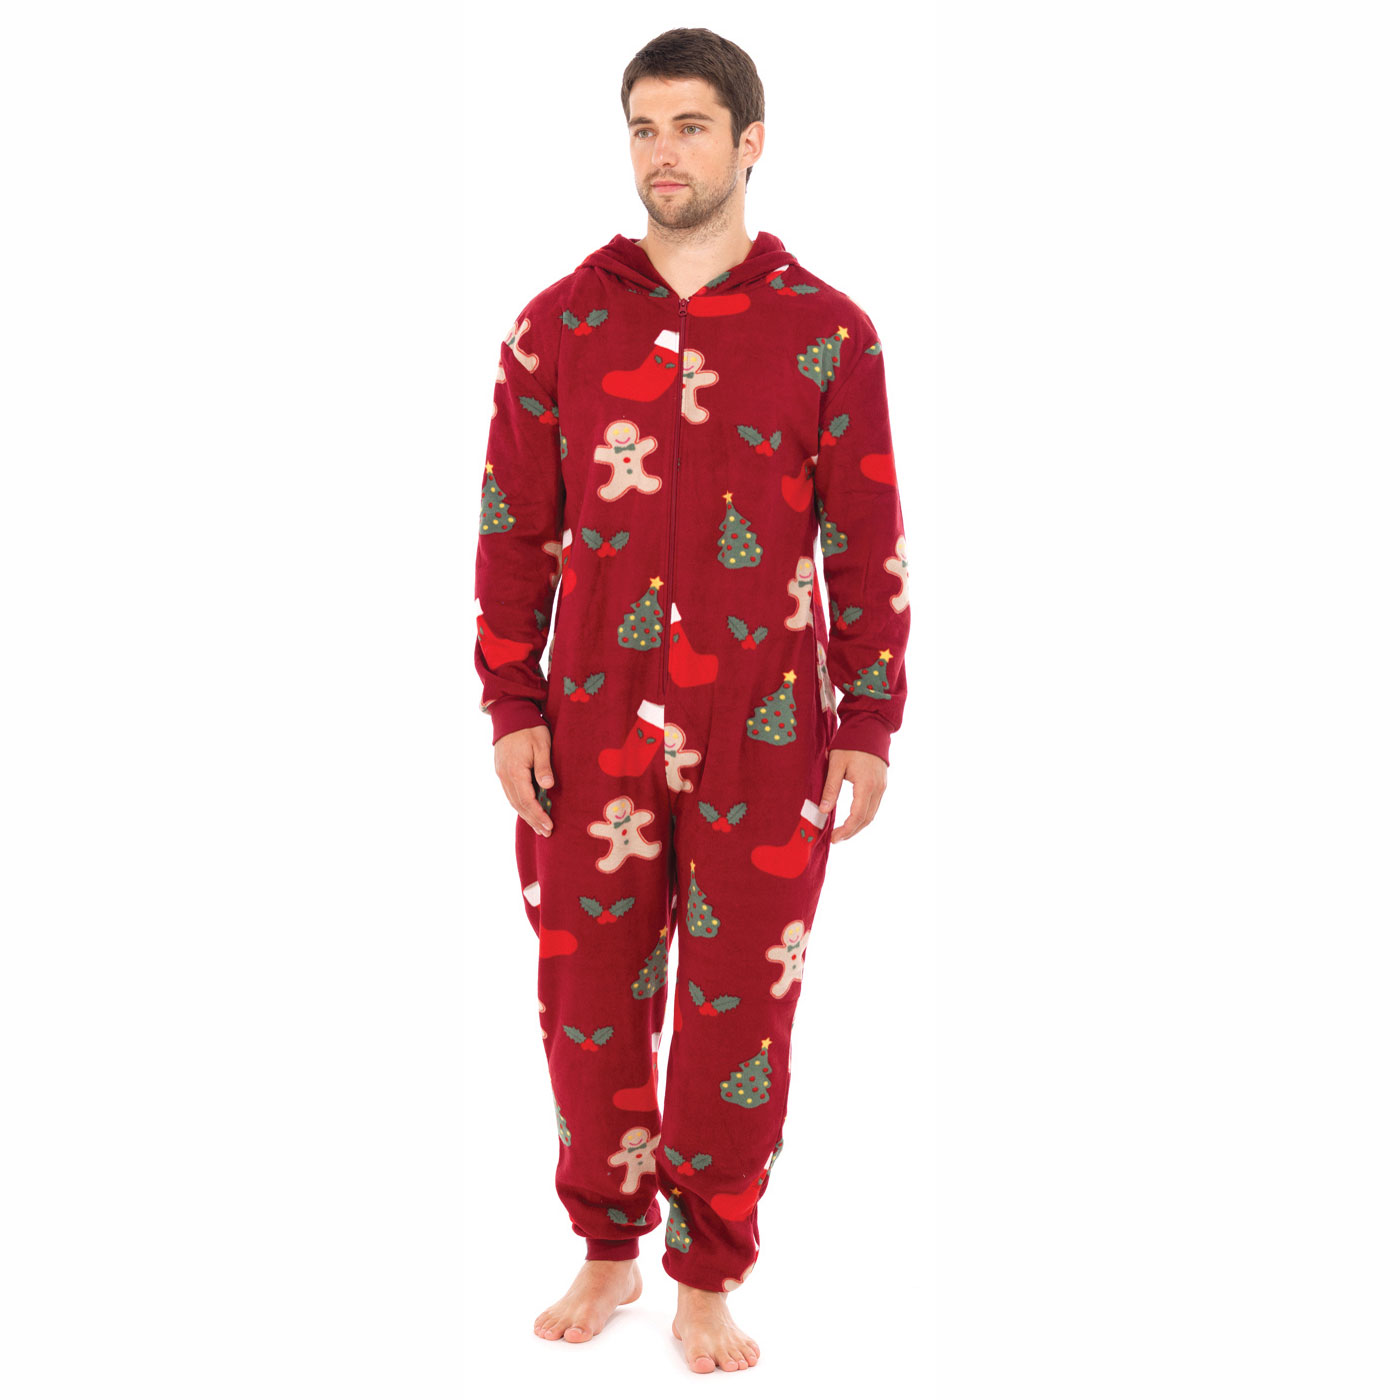 Adults Mens Xmas All-In-One With Hood Christmas festive Nightwear ...